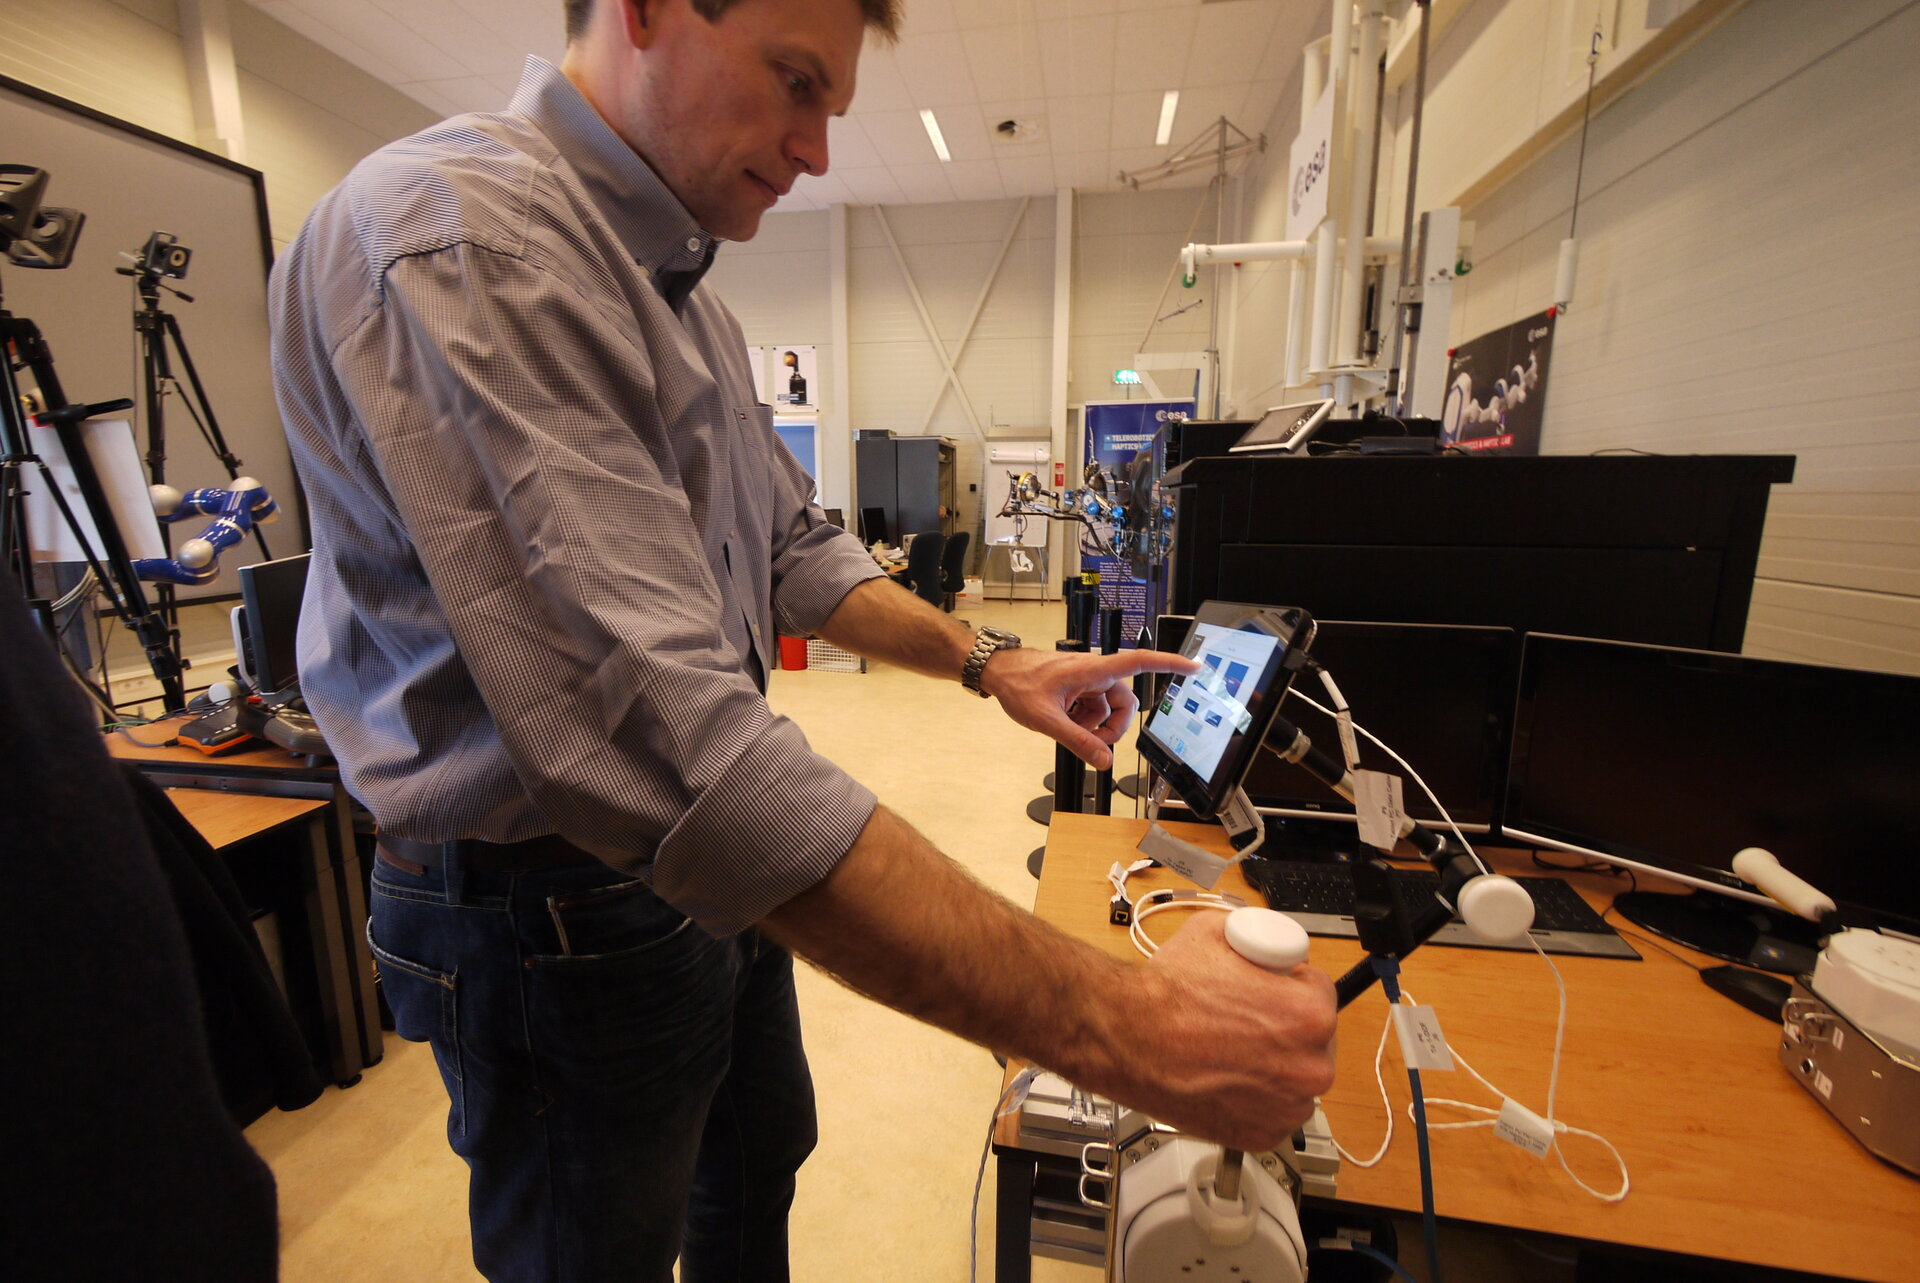 Andreas Mogensen tests Haptics-1